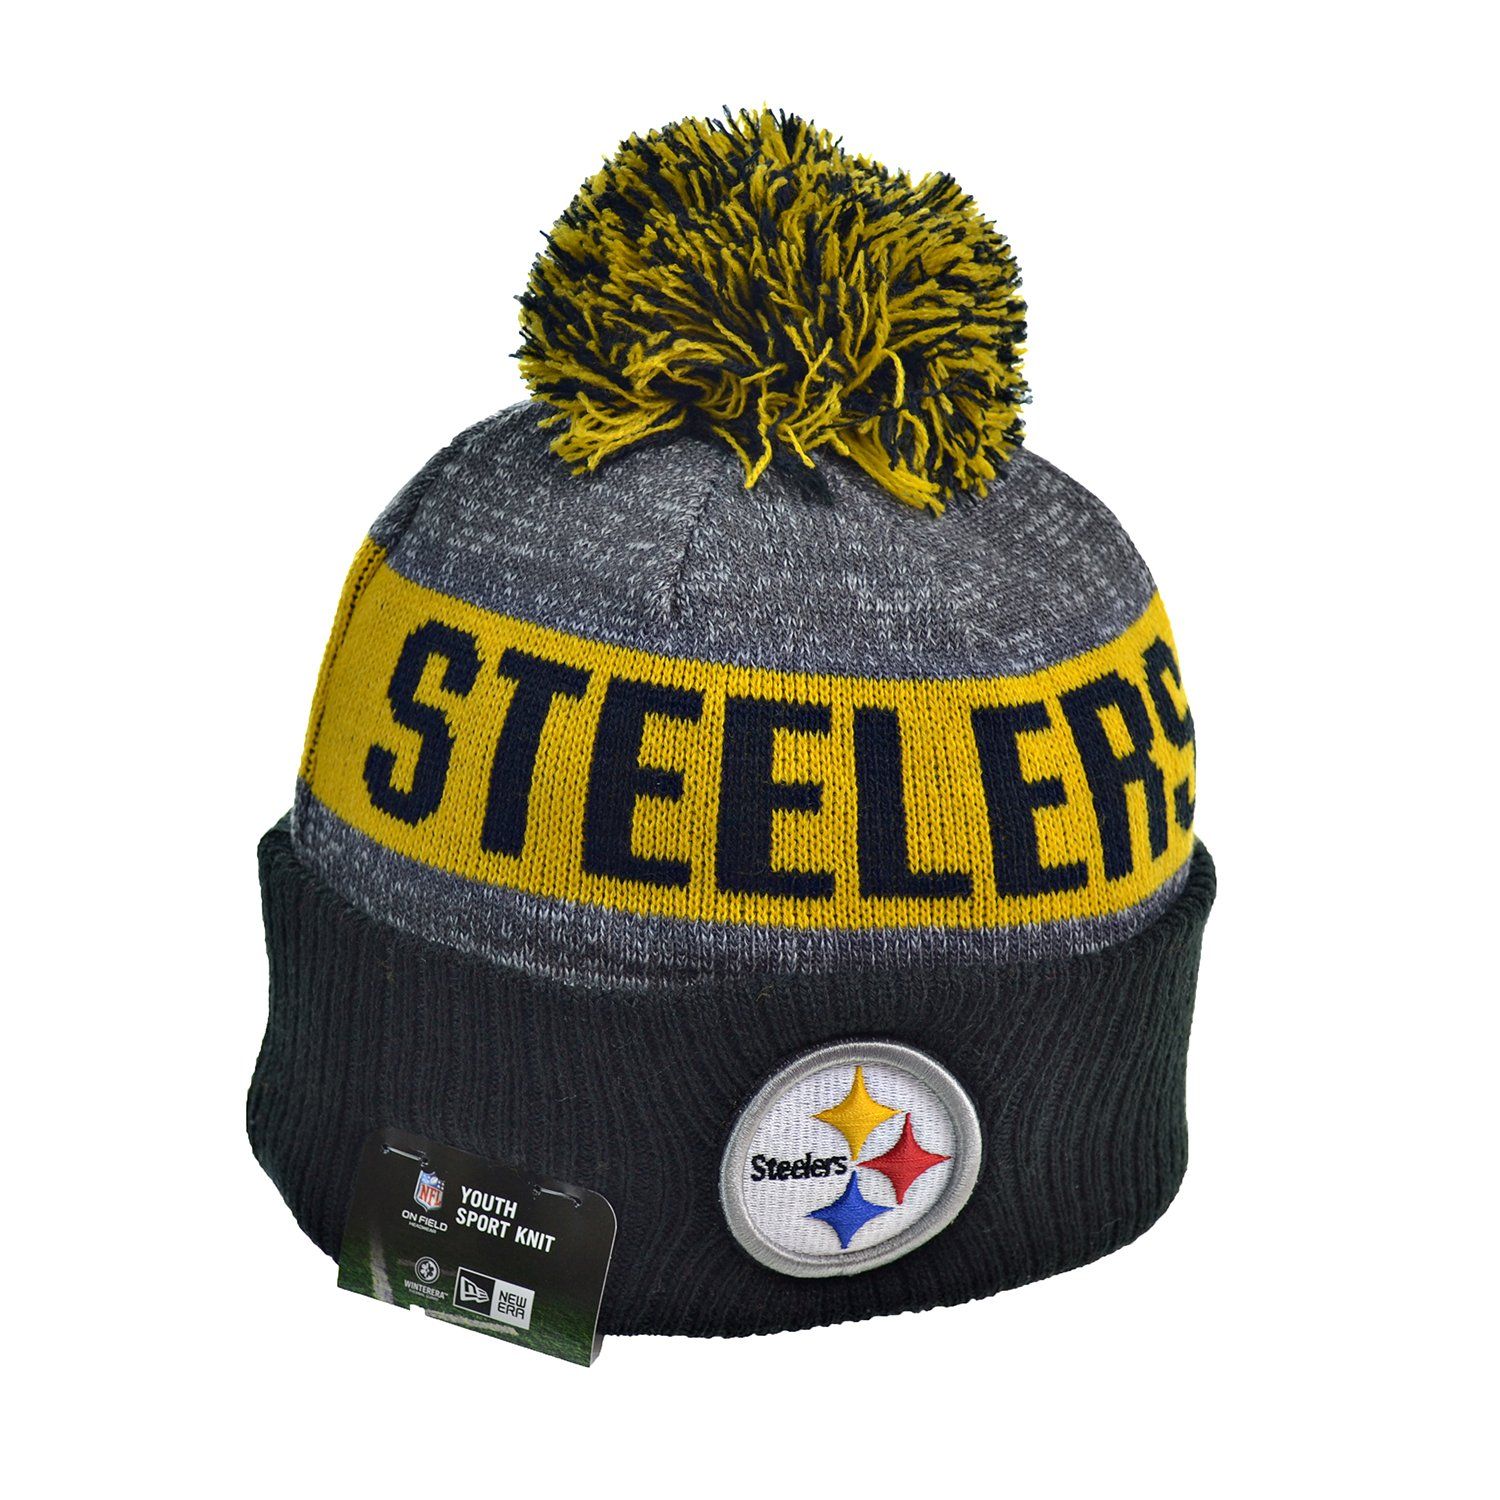 ... Football Beanie Hats 2016 New Era Official Sideline On Field Junior  Sport Knit Cap Team Color Unisex For Boys   Girls (One Size e51542a1ec3